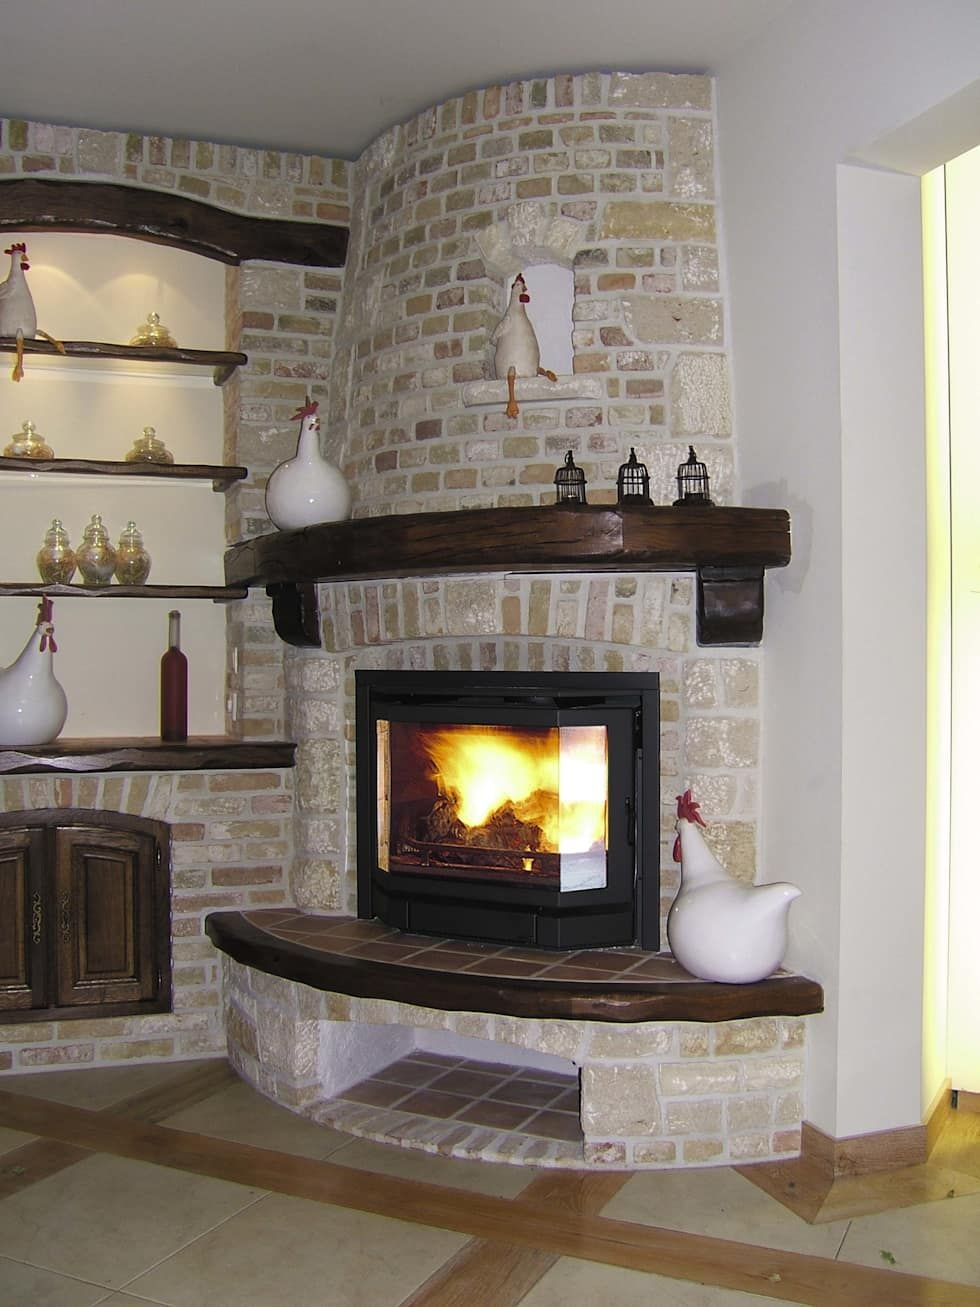 CORNER FIREPLACES: CORNER VENTLESS GAS FIREPLACE INSERTS